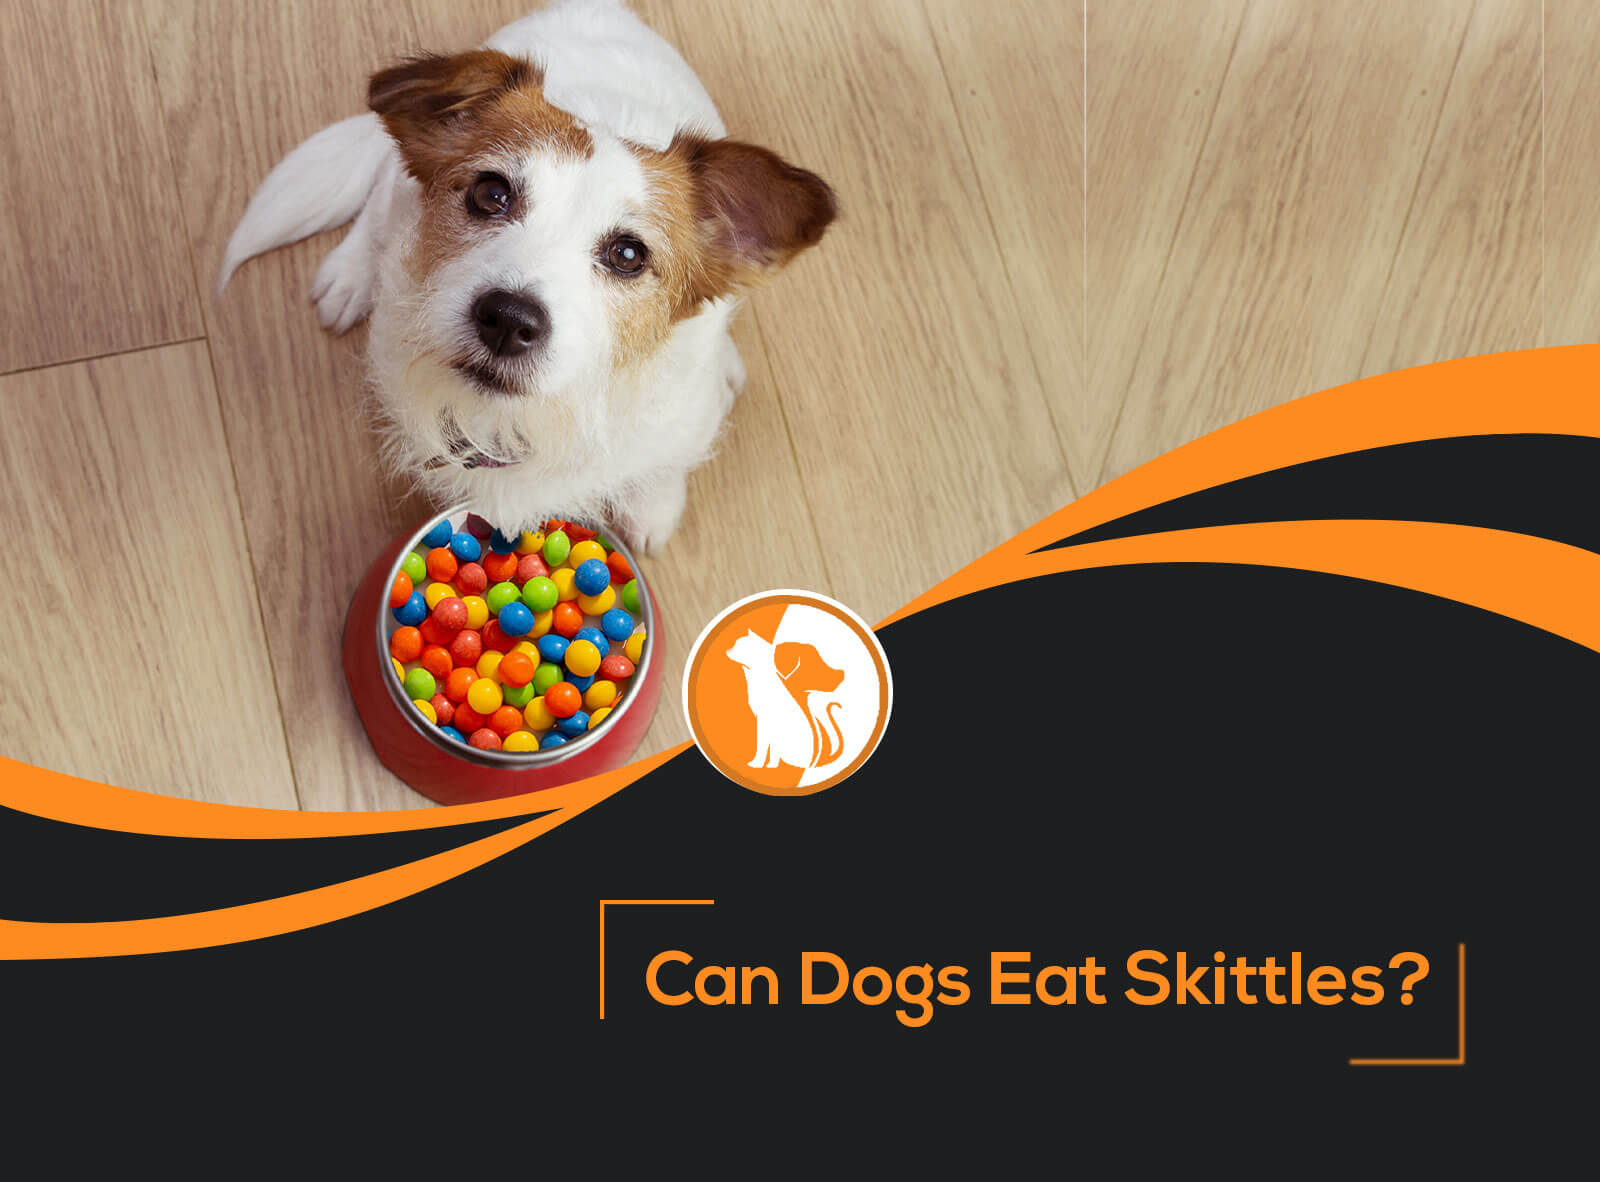 Can Dogs Eat Skittles?